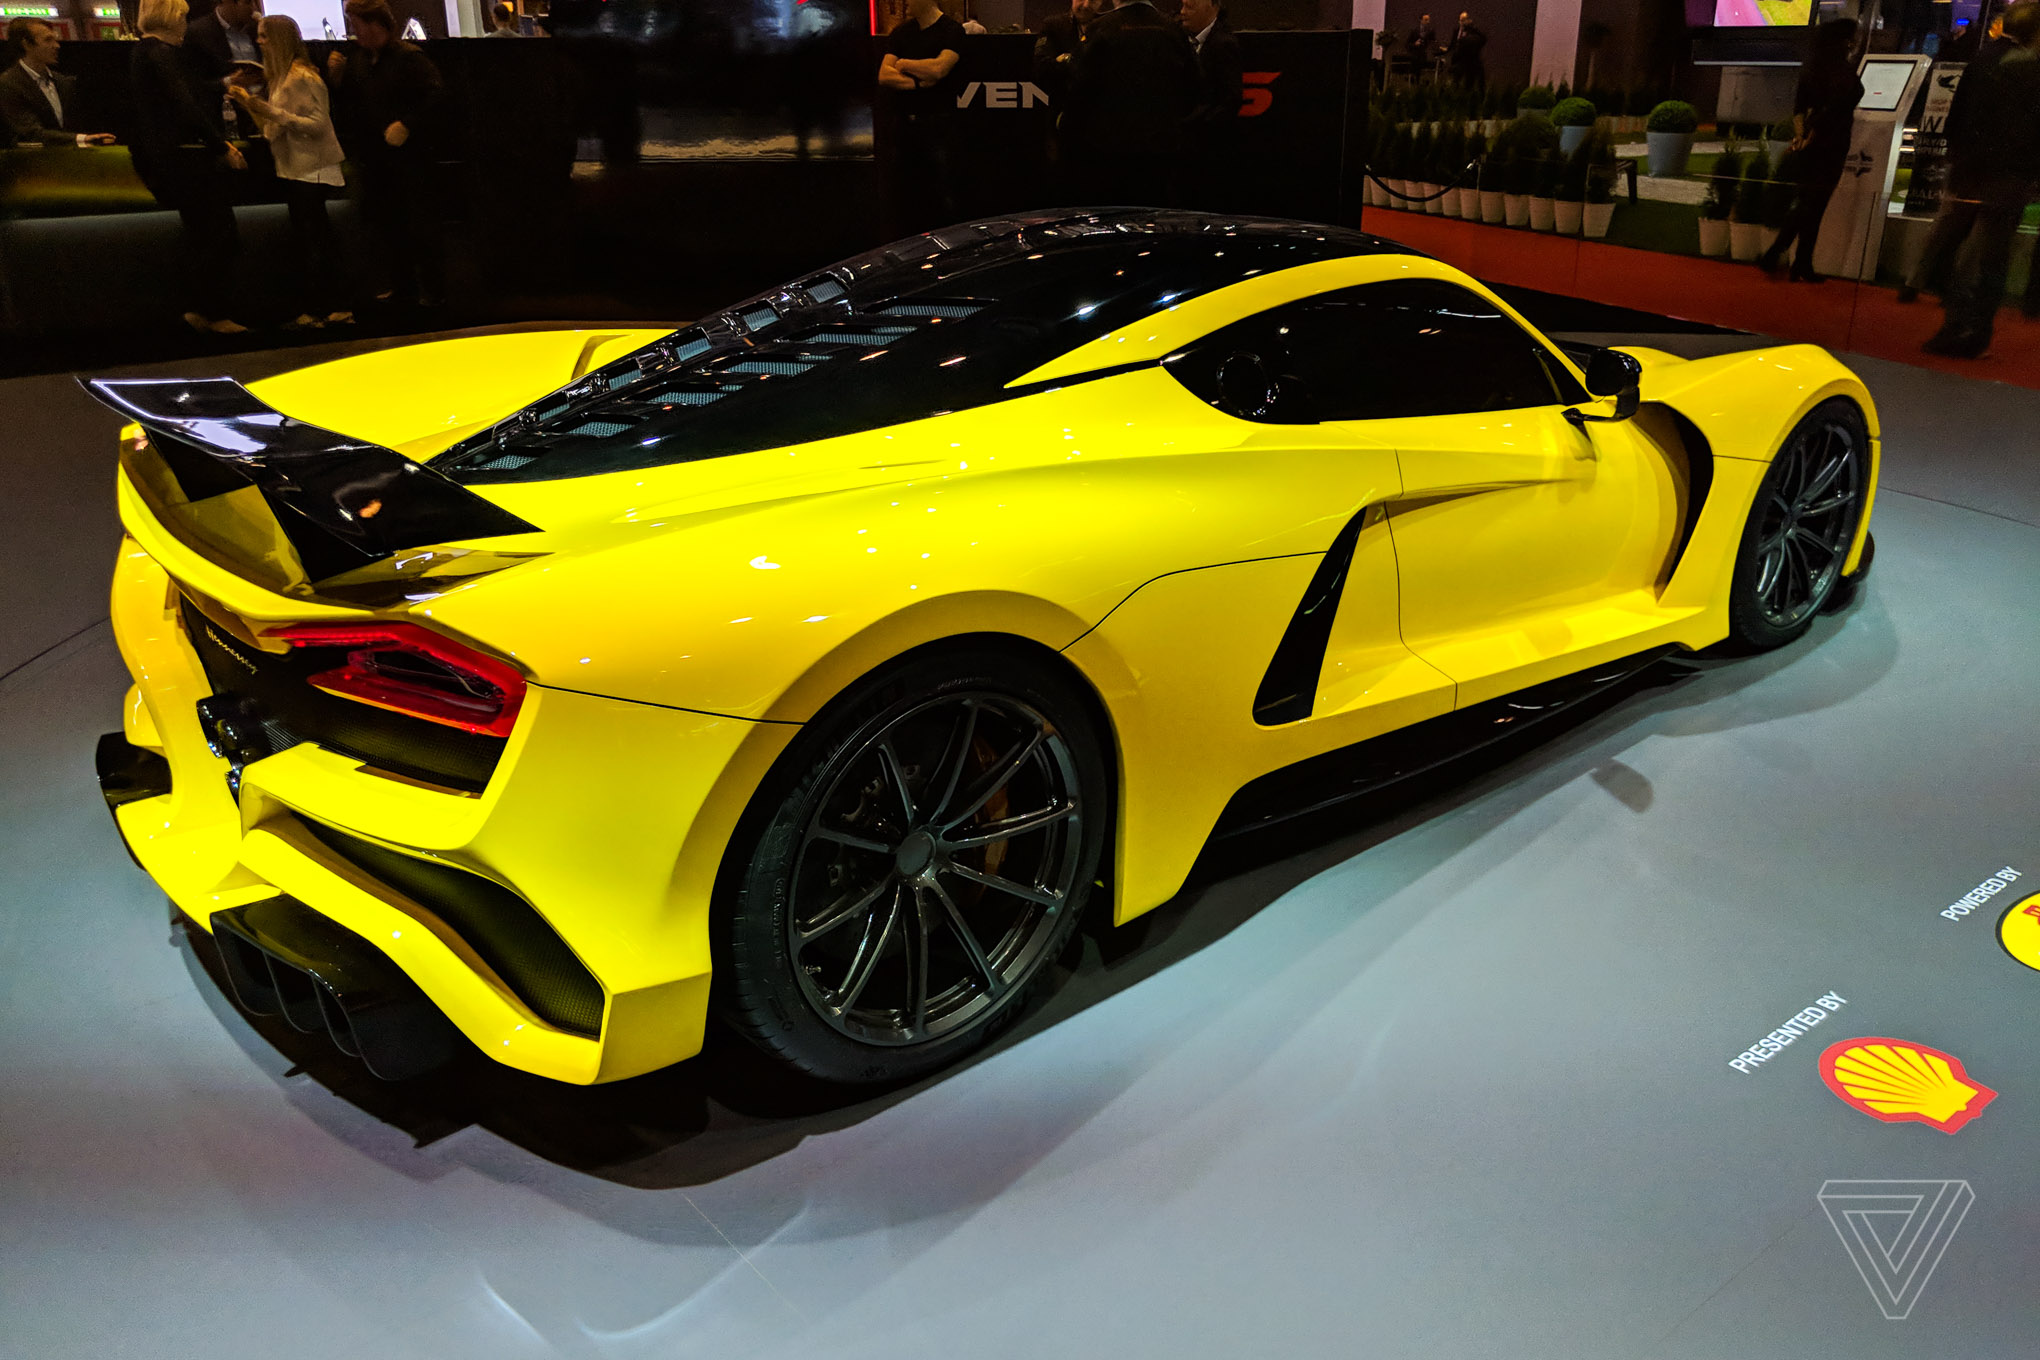 2018 Hennessey Venom F5 Hennessey S Venom F5 Could Be The First Road Car To Break 300